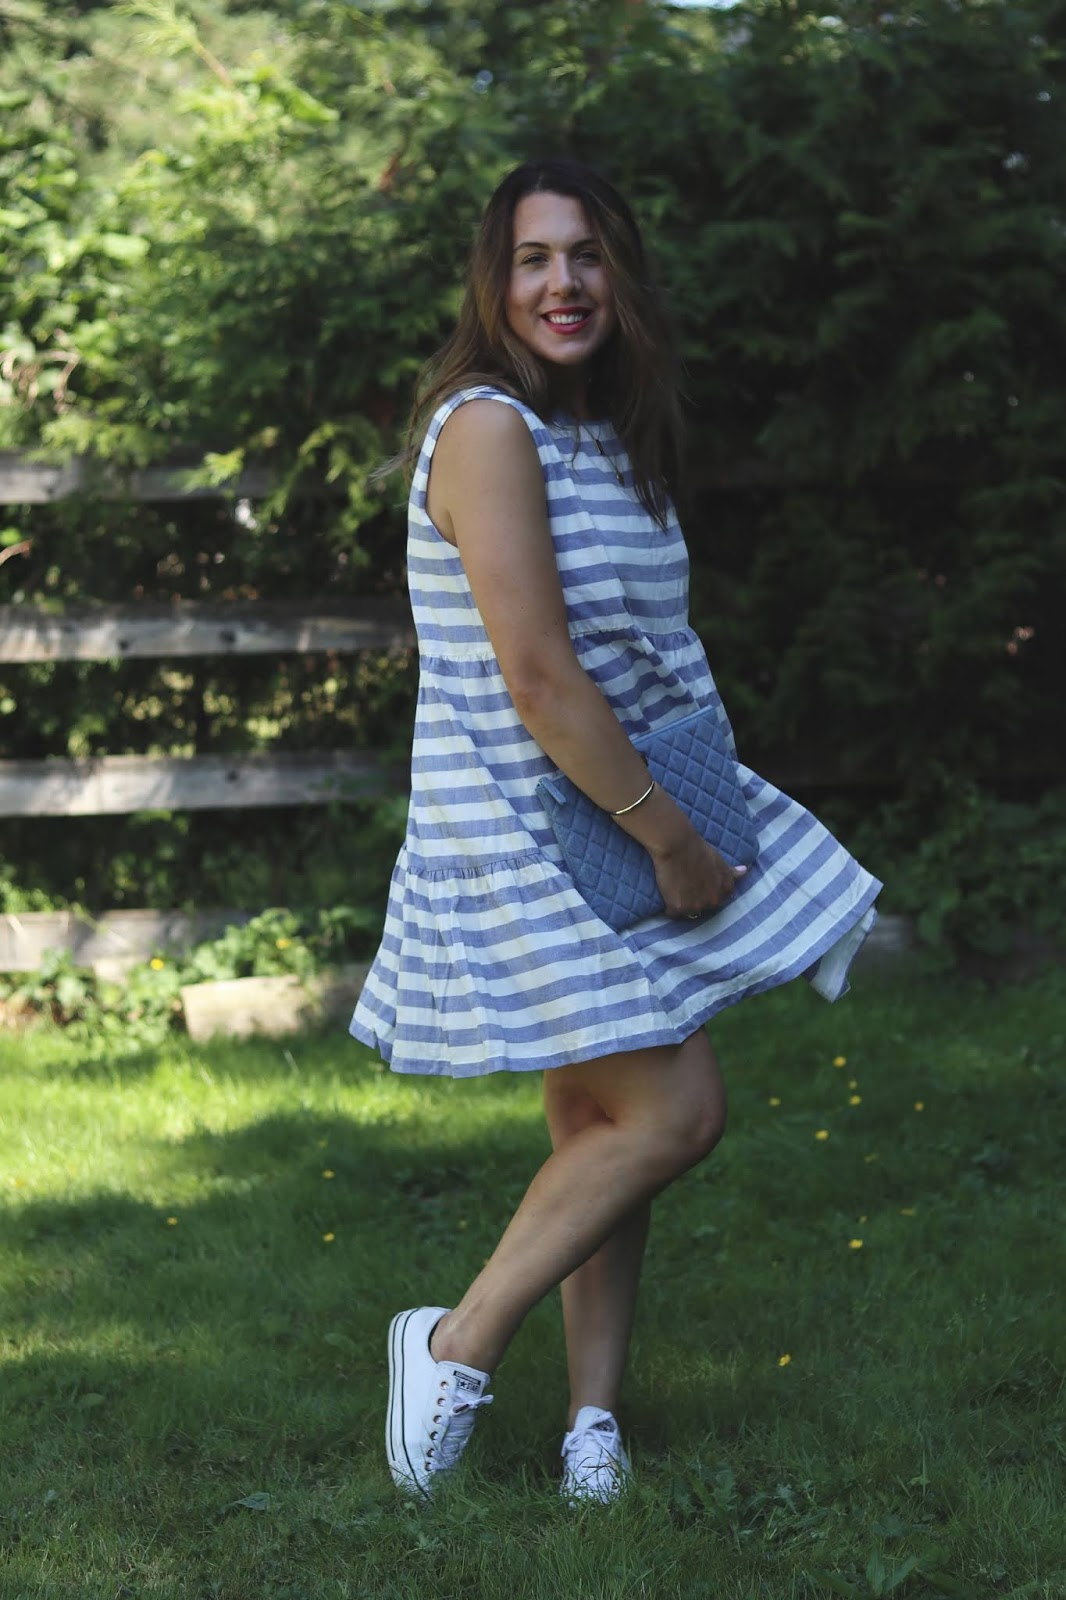 Jillian Harris x Etsy Peaches dress by Emma Knudsen